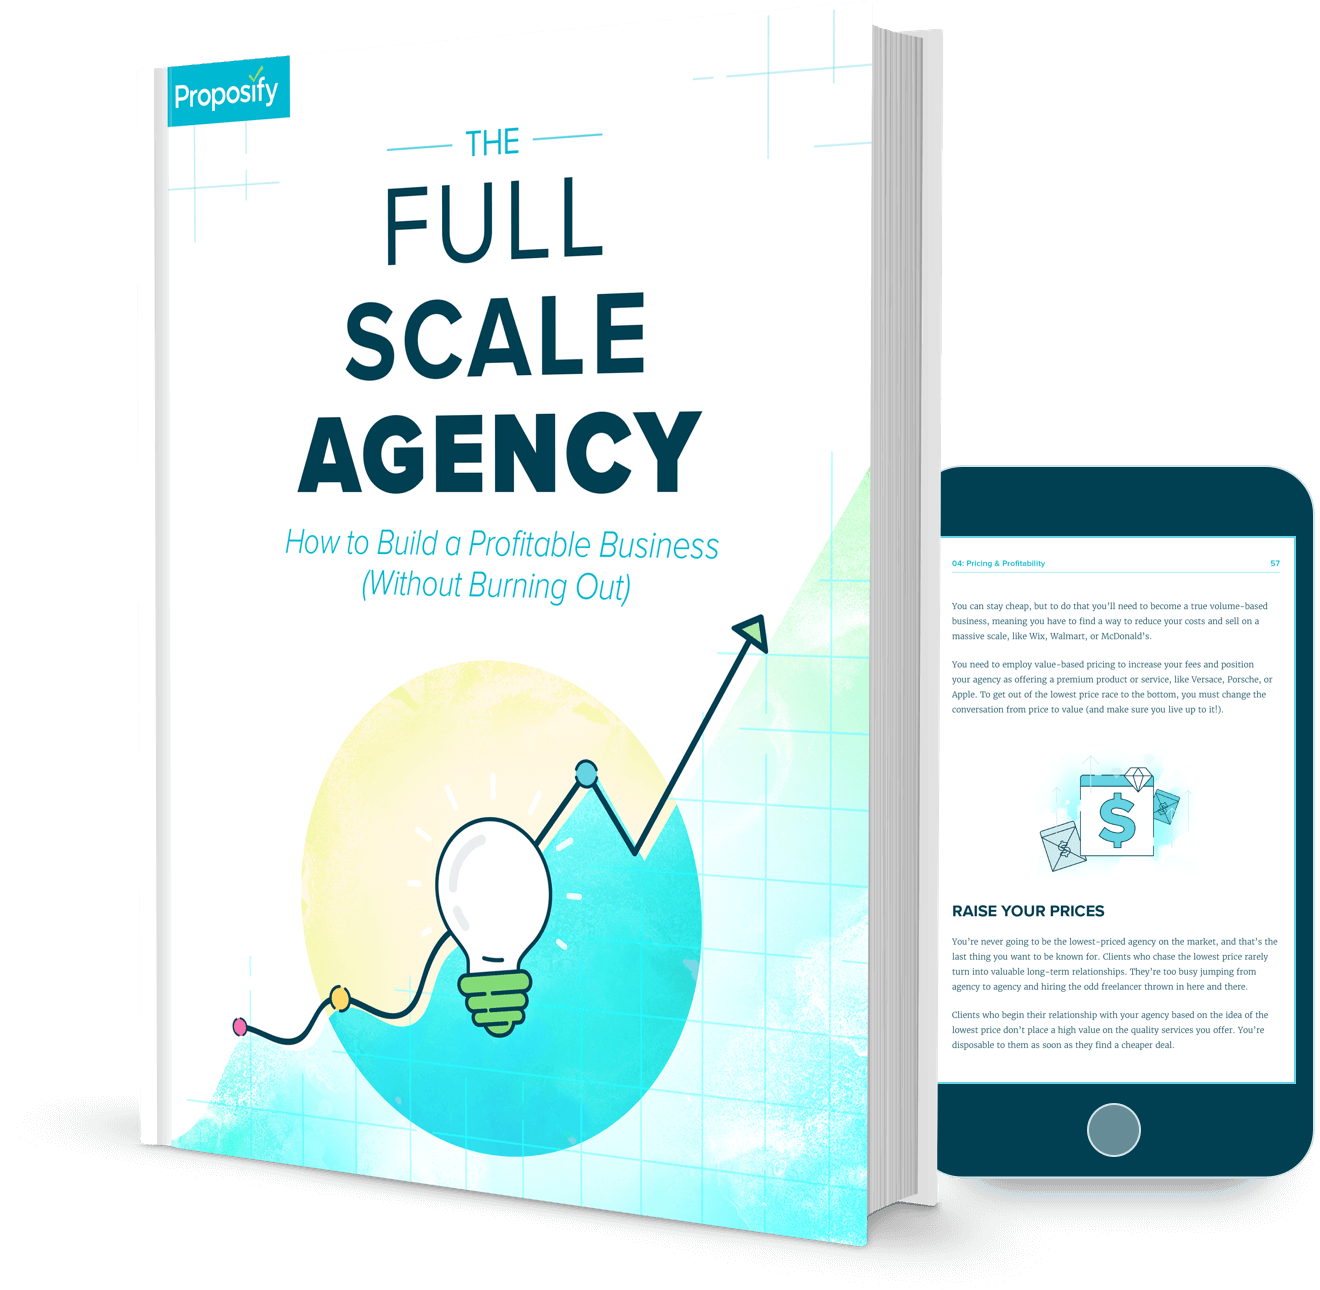 Full Scale Agency